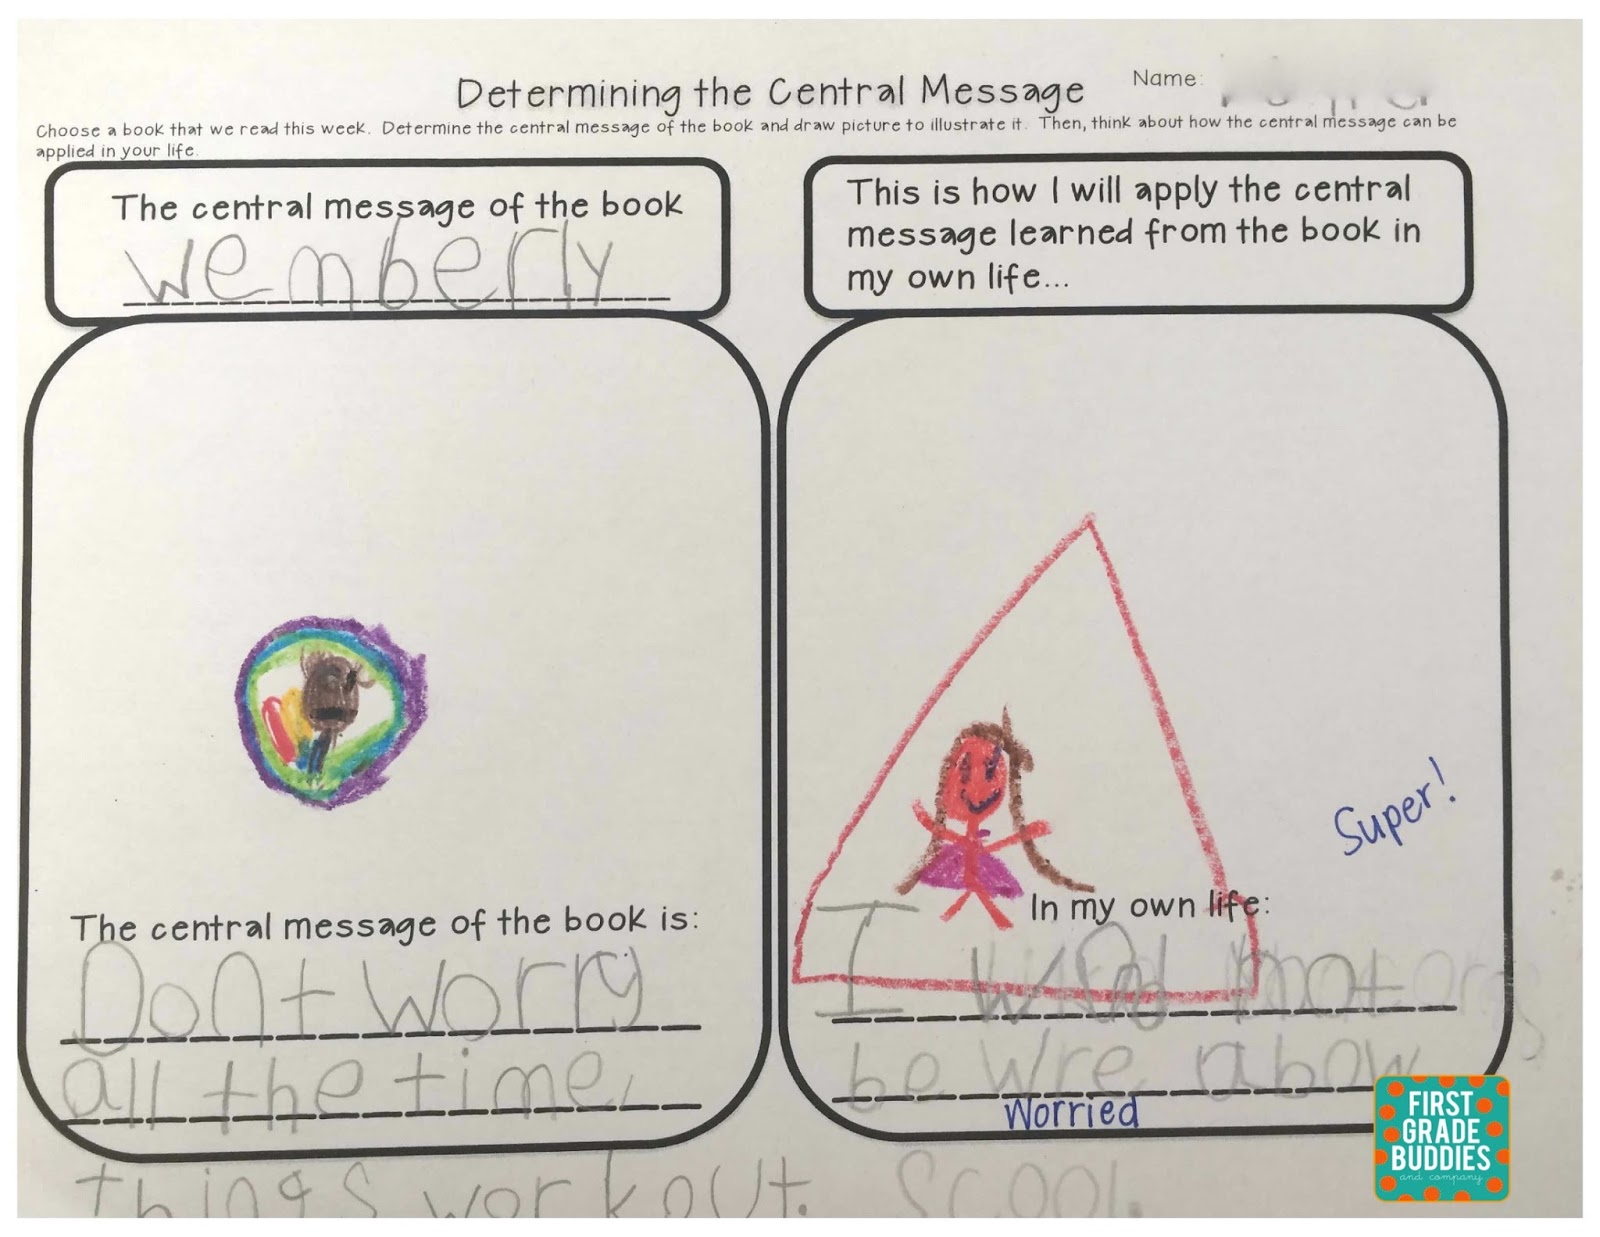 worksheet Supporting Details Worksheet first grade buddies determining the central message and wednesday september 30 2015